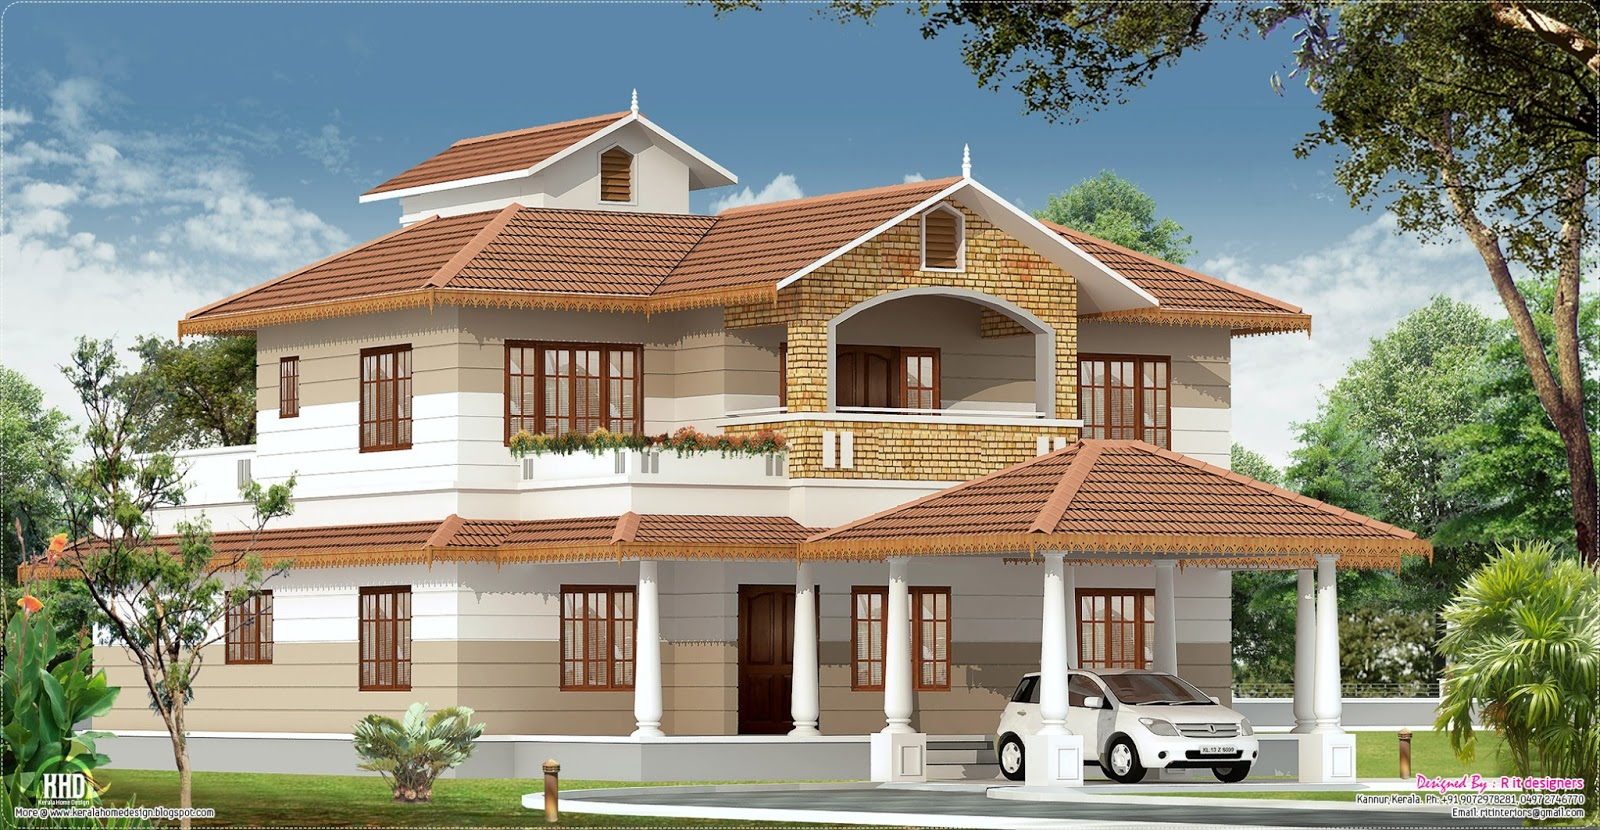 2700 kerala home with interior designs kerala for Kerala house plans and designs